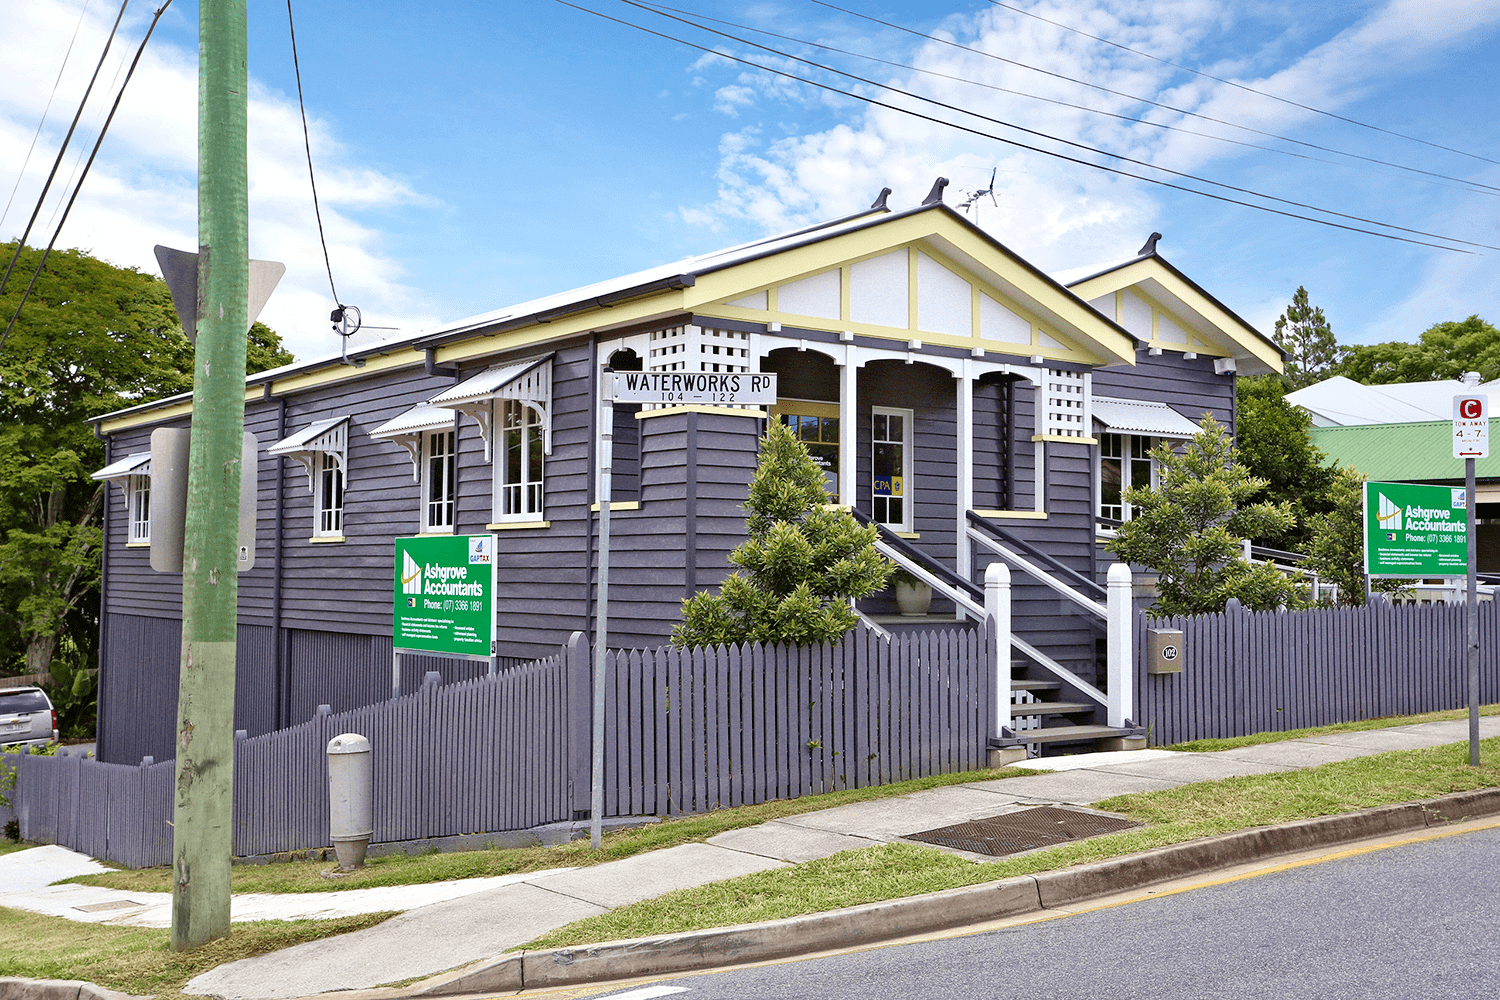 Commercial Character - Waterworks Rd, Ashgrove